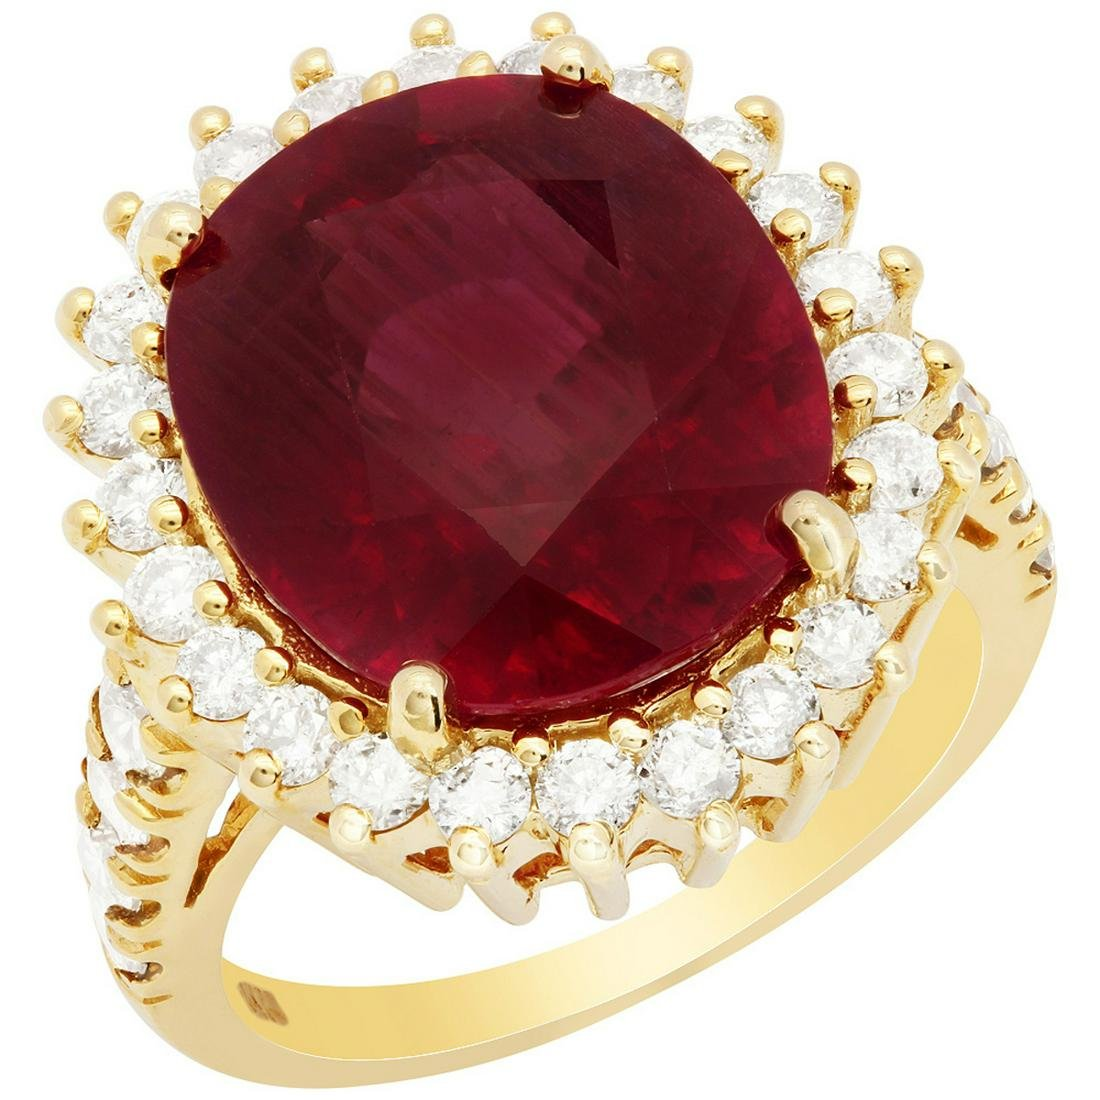 14k Yellow Gold 12.95ct Ruby 1.36ct Diamond Ring